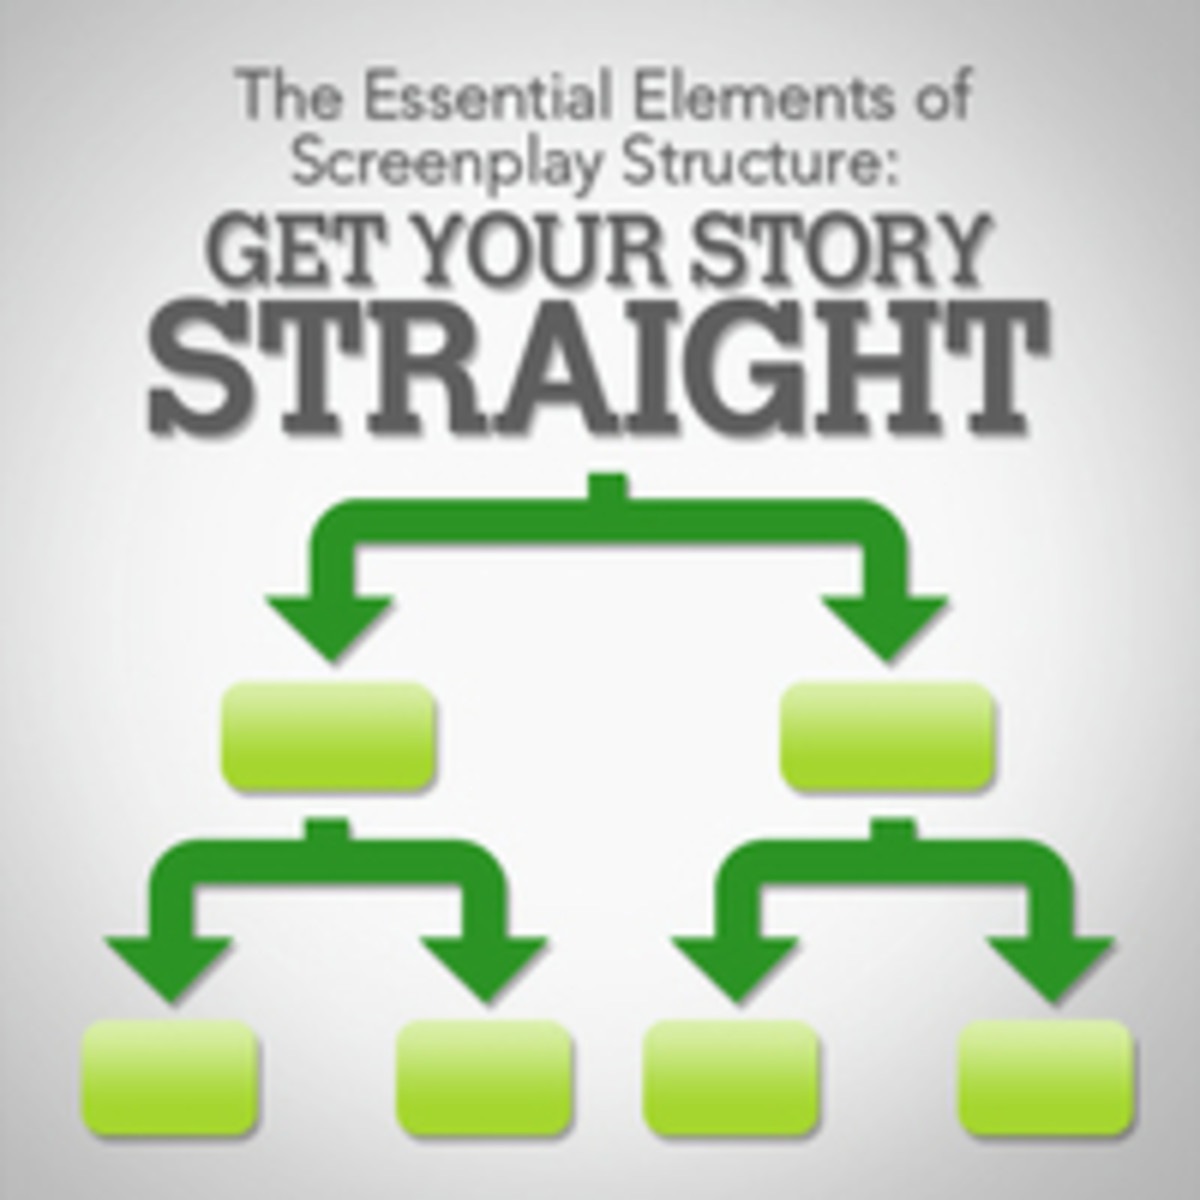 The Essential Elements of Screenplay Structure: Get Your Story Straight